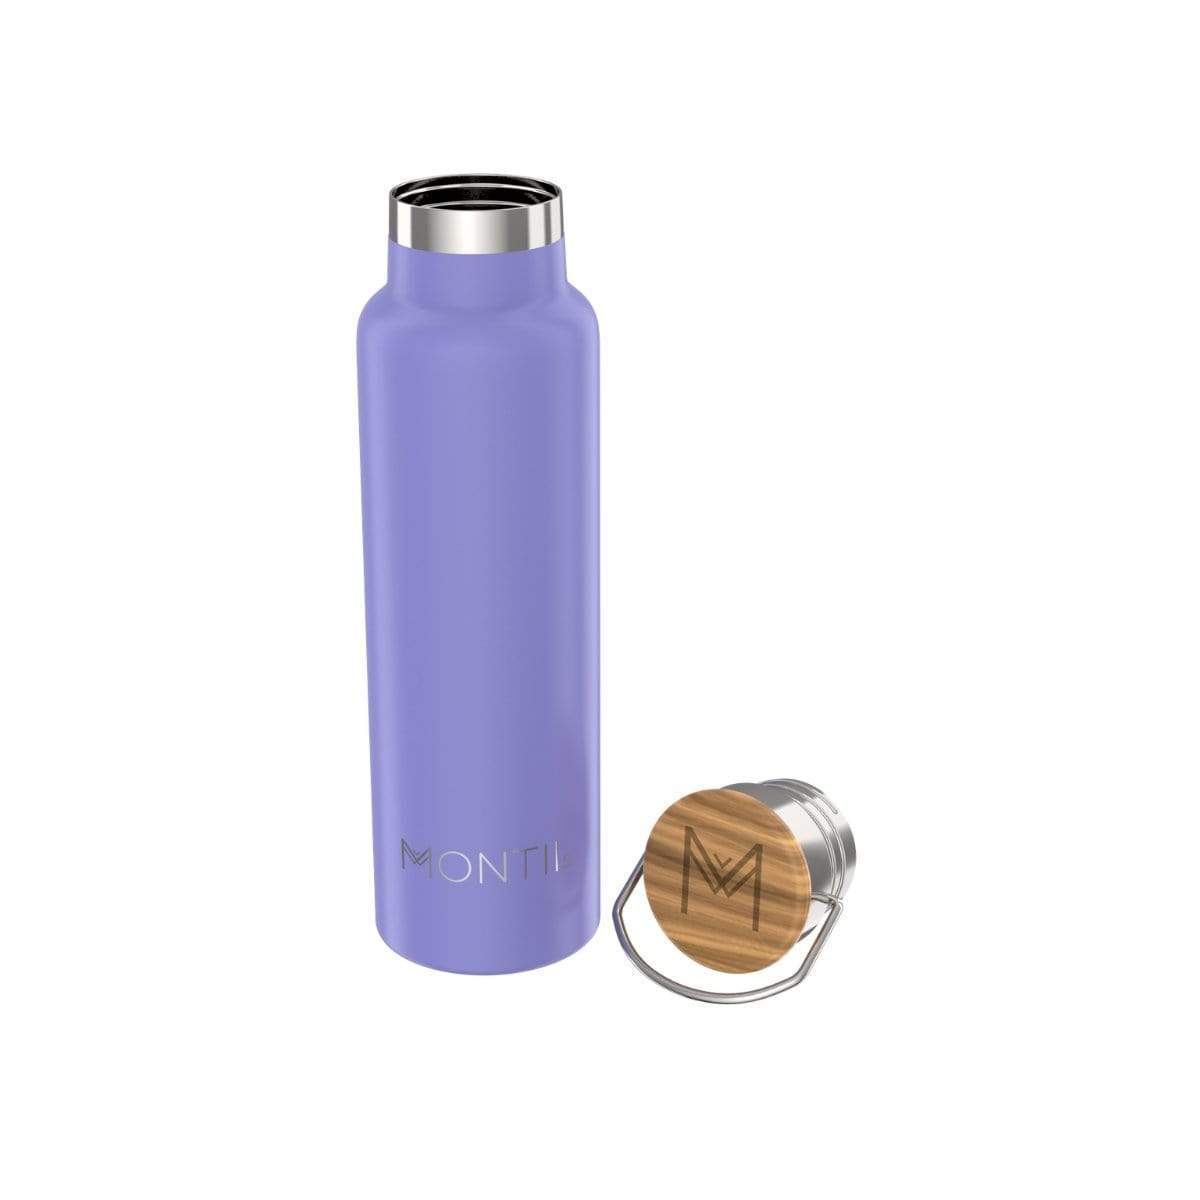 Montii Co Insulated Bottle 600ml Montii Water Bottles Violet at Little Earth Nest Eco Shop